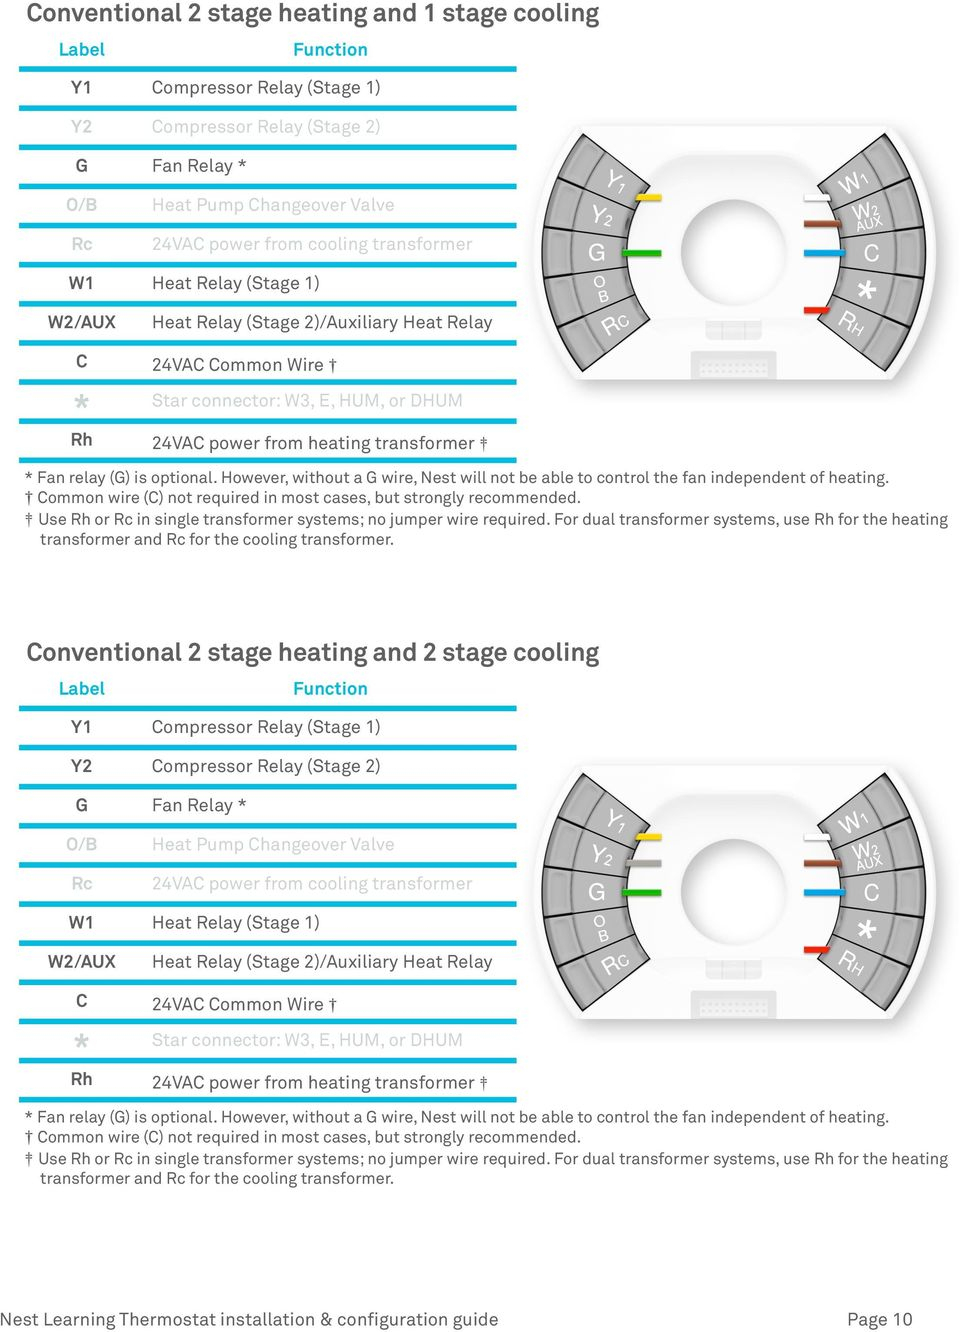 Nest Learning Thermostat Pro Installation & Configuration Guide - Pdf - Nest 3 Wiring Diagram Heat Pump With Emergency Heat